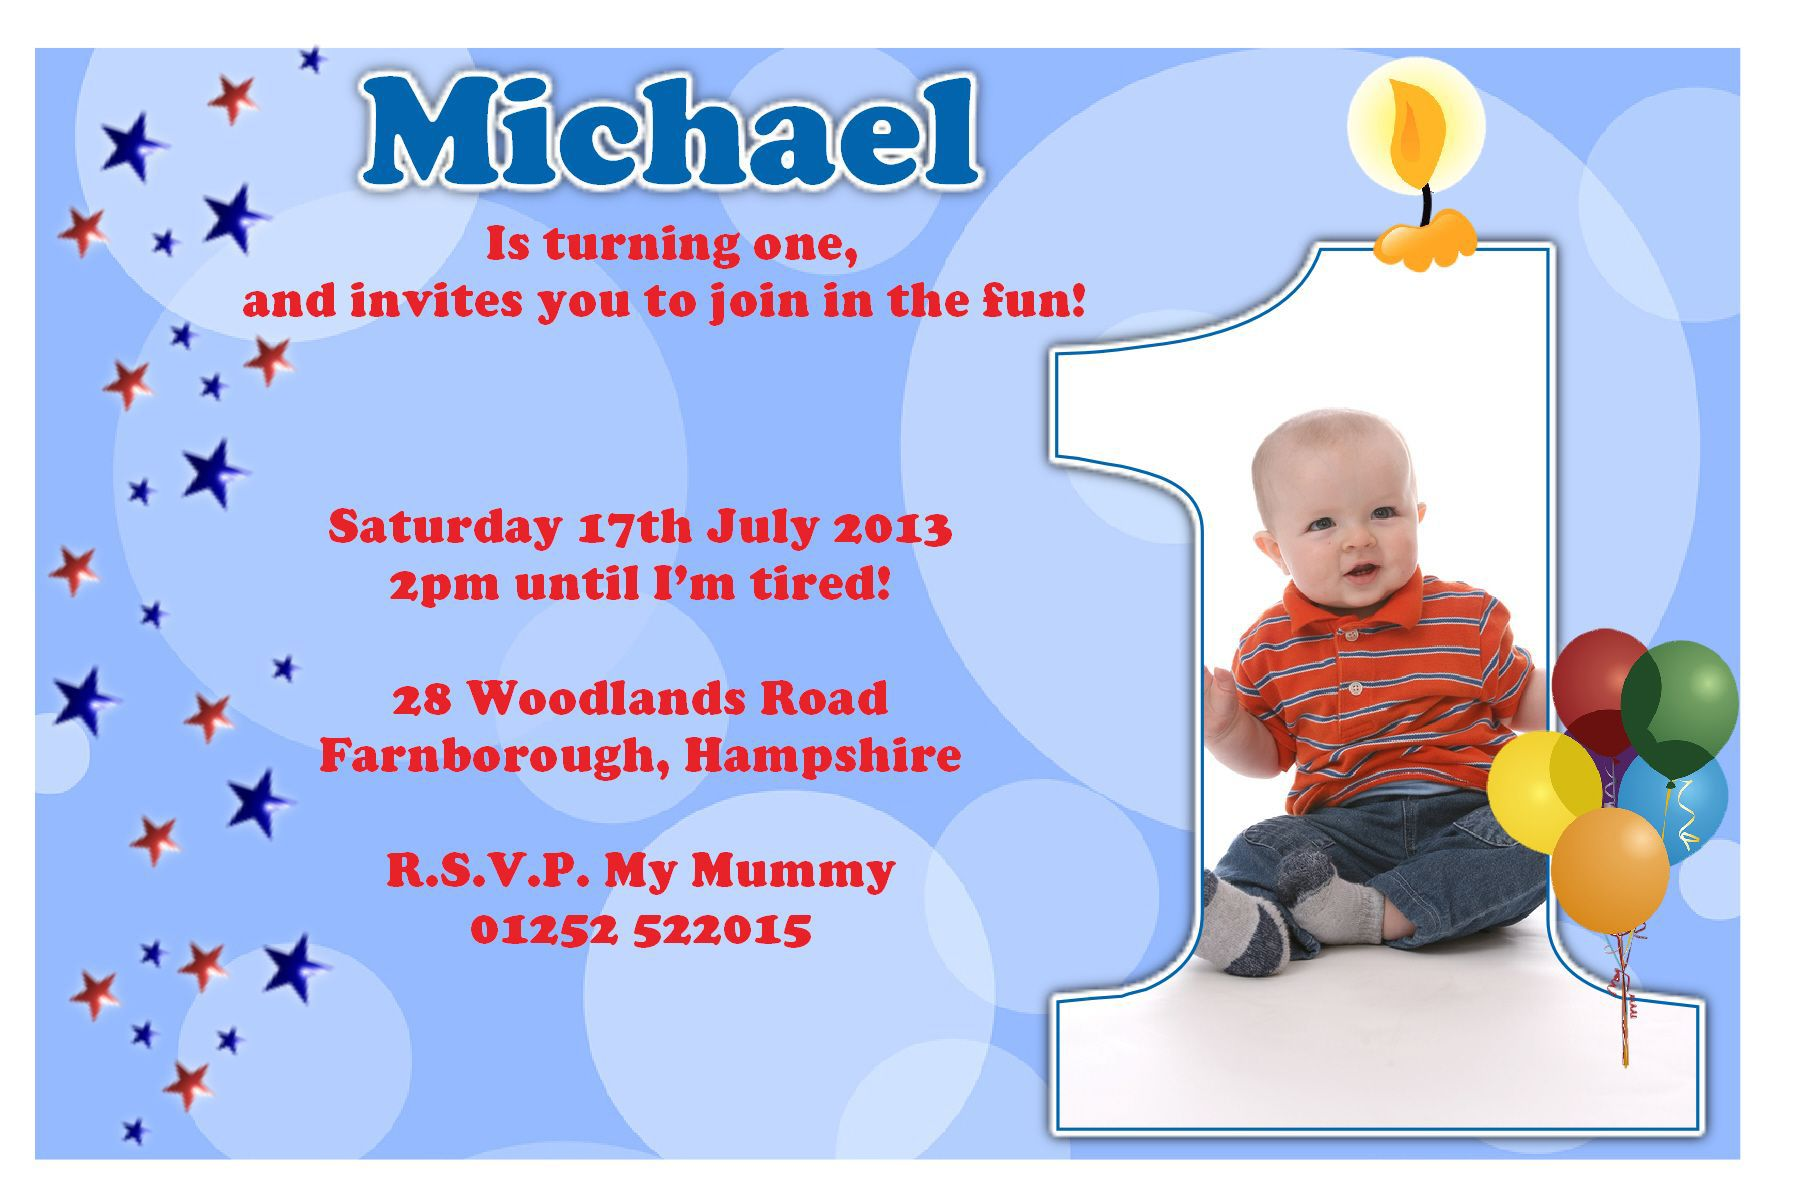 Birthday Party Invitation Template Sample | Invitation Templates ...